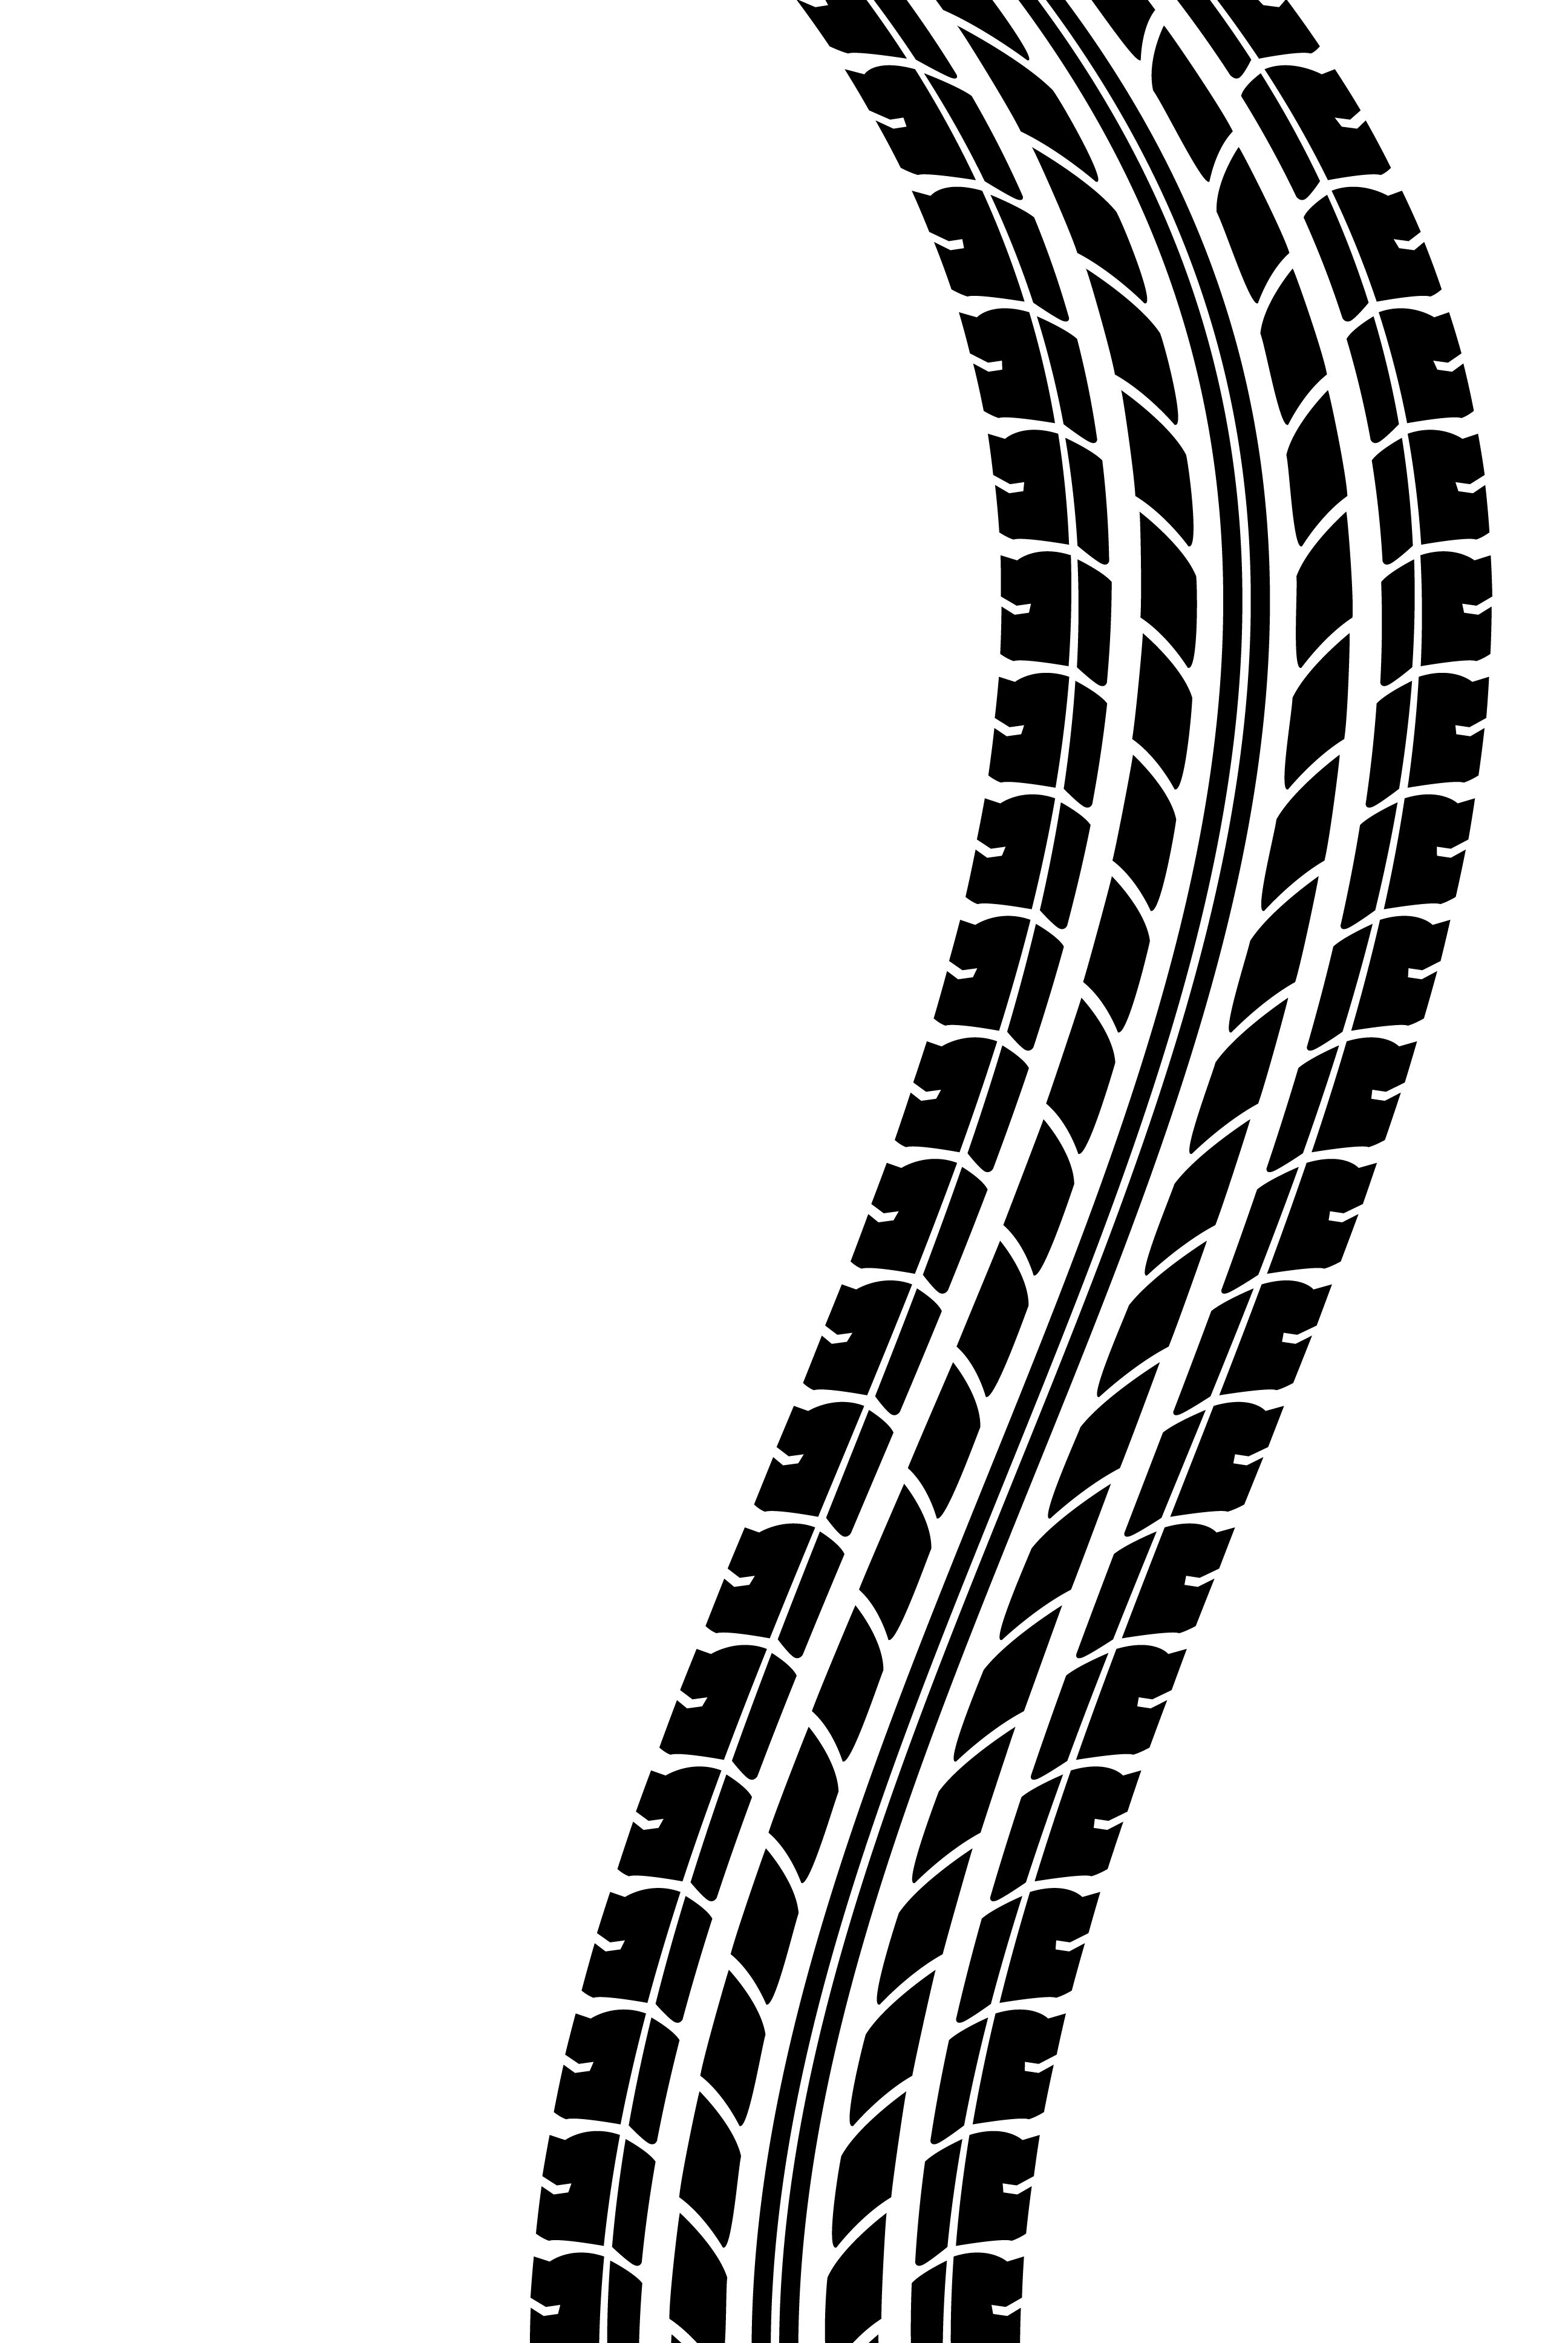 Tracks clipart race track. Images for train bakery